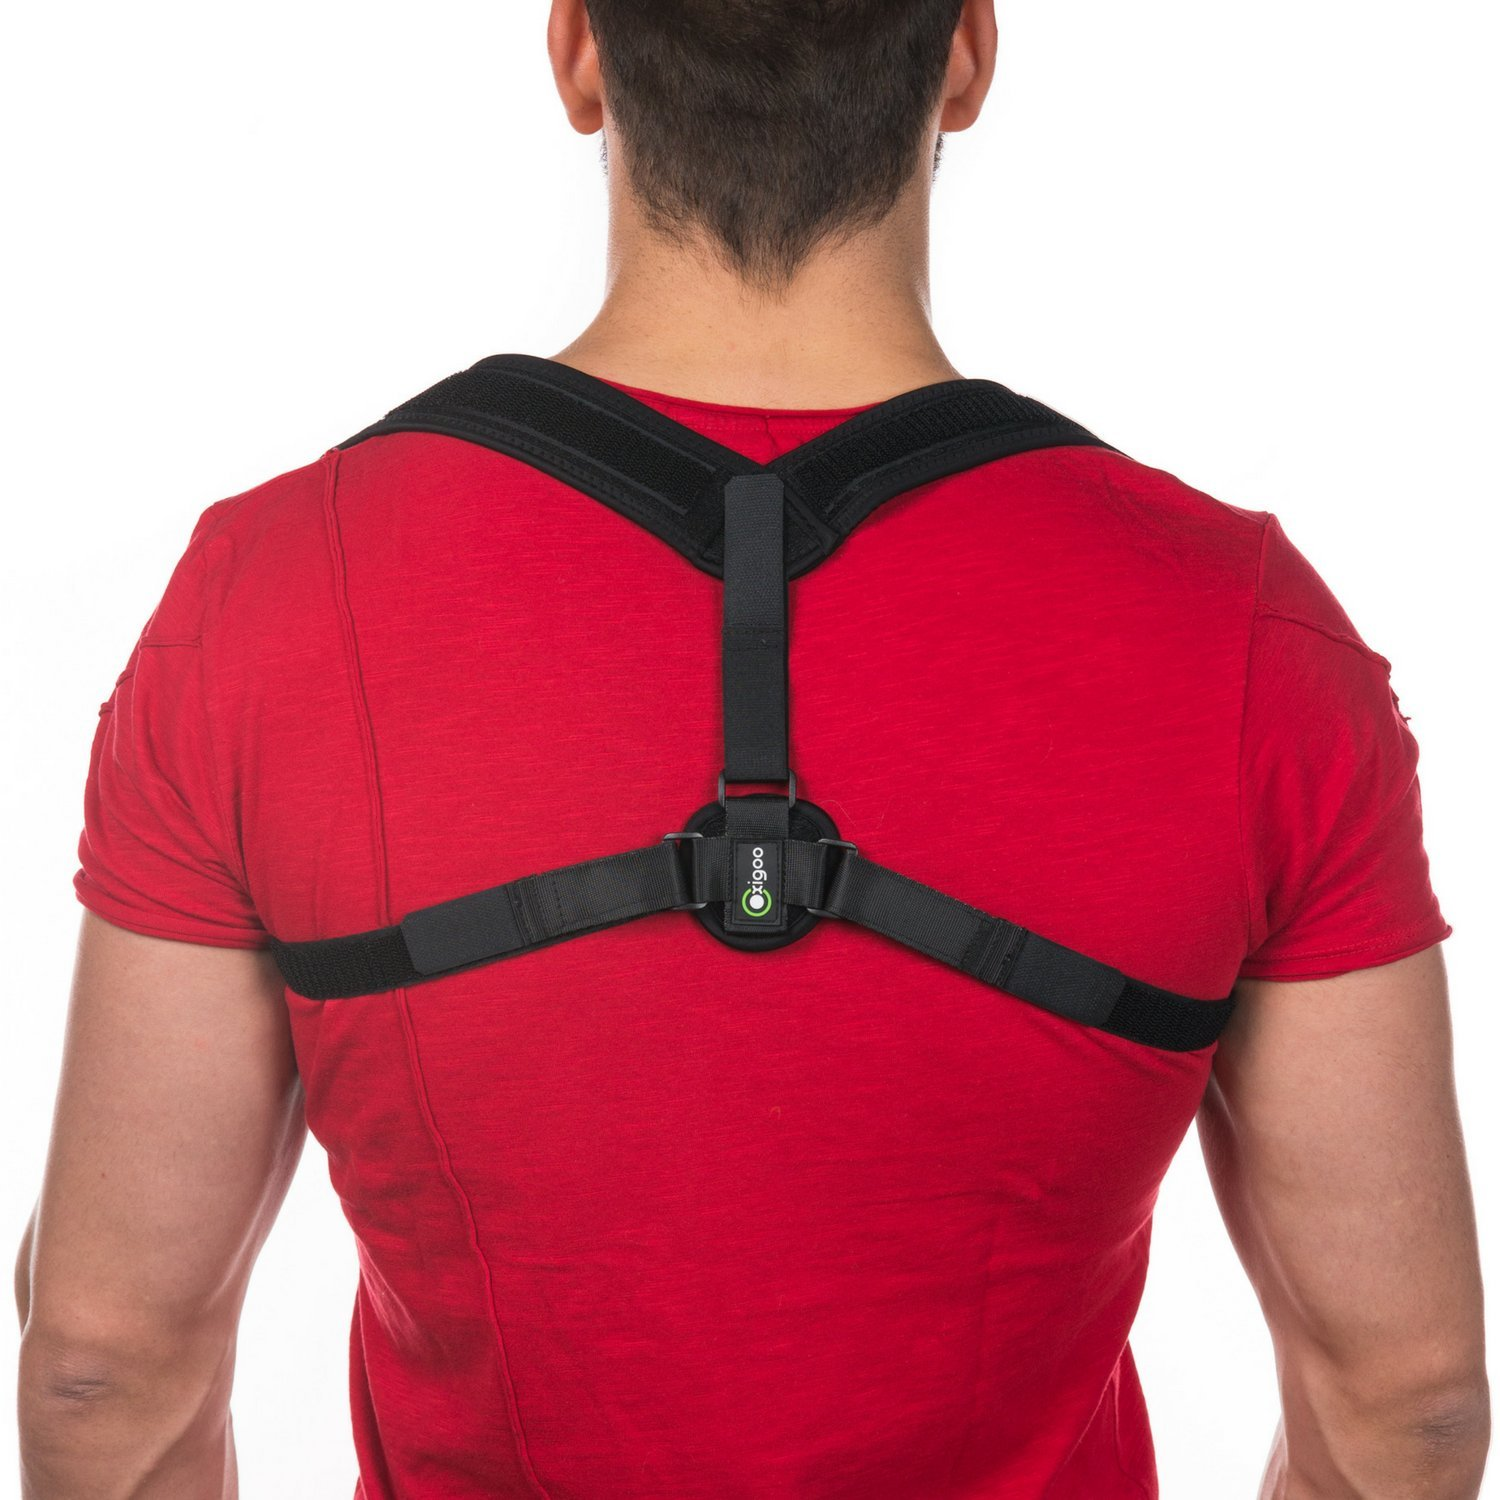 Oxigoo Posture corrector for Women and Men, Clavicle and Shoulder Support Brace, Upper Back Support, Helps with Cervical Neck Pain, Improves Poor Posture, Posture Brace for Back Pain Relief